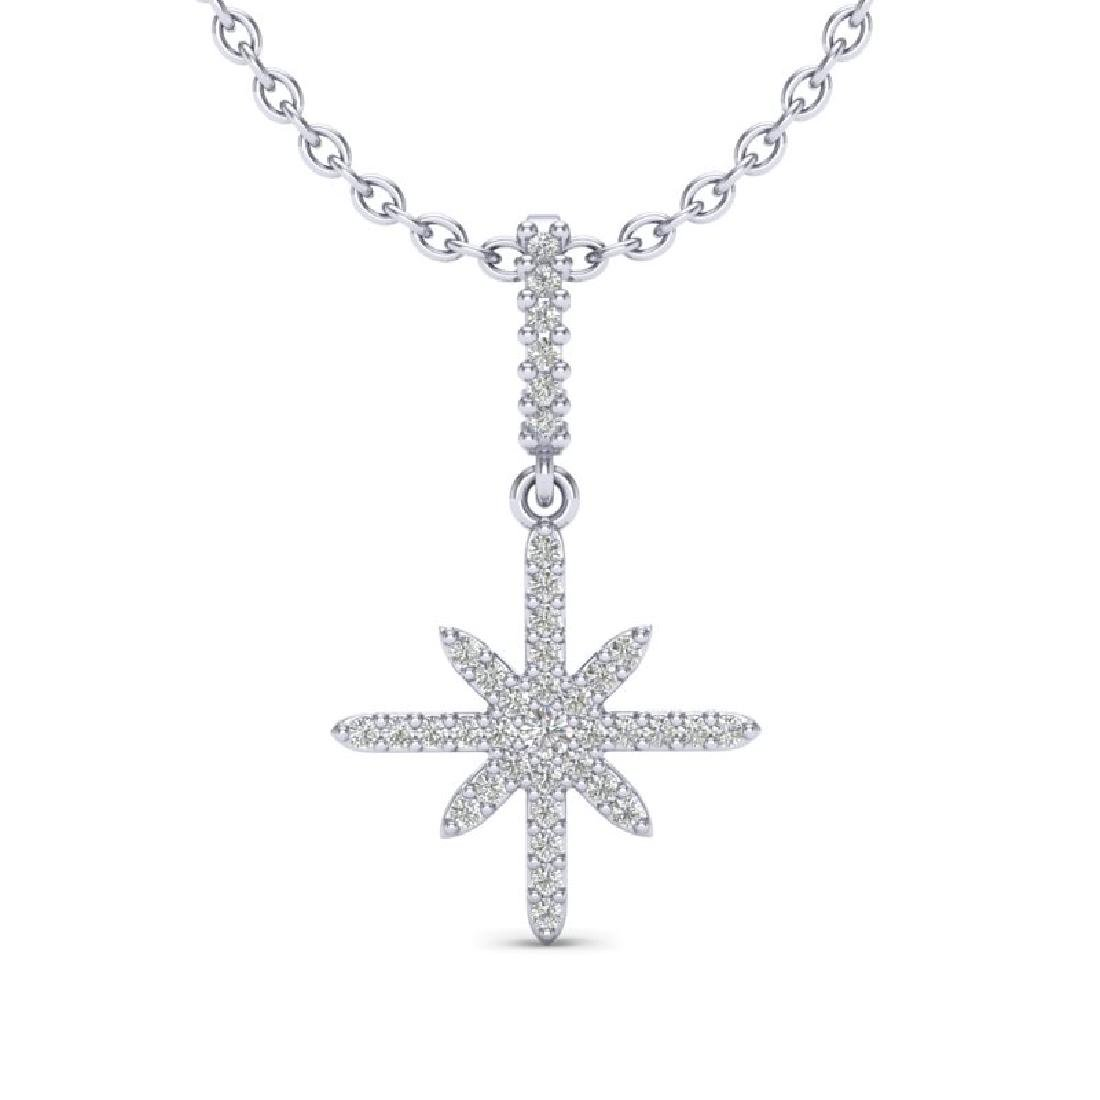 0.38 CTW Micro Pave VS/SI Diamond Necklace 18K White